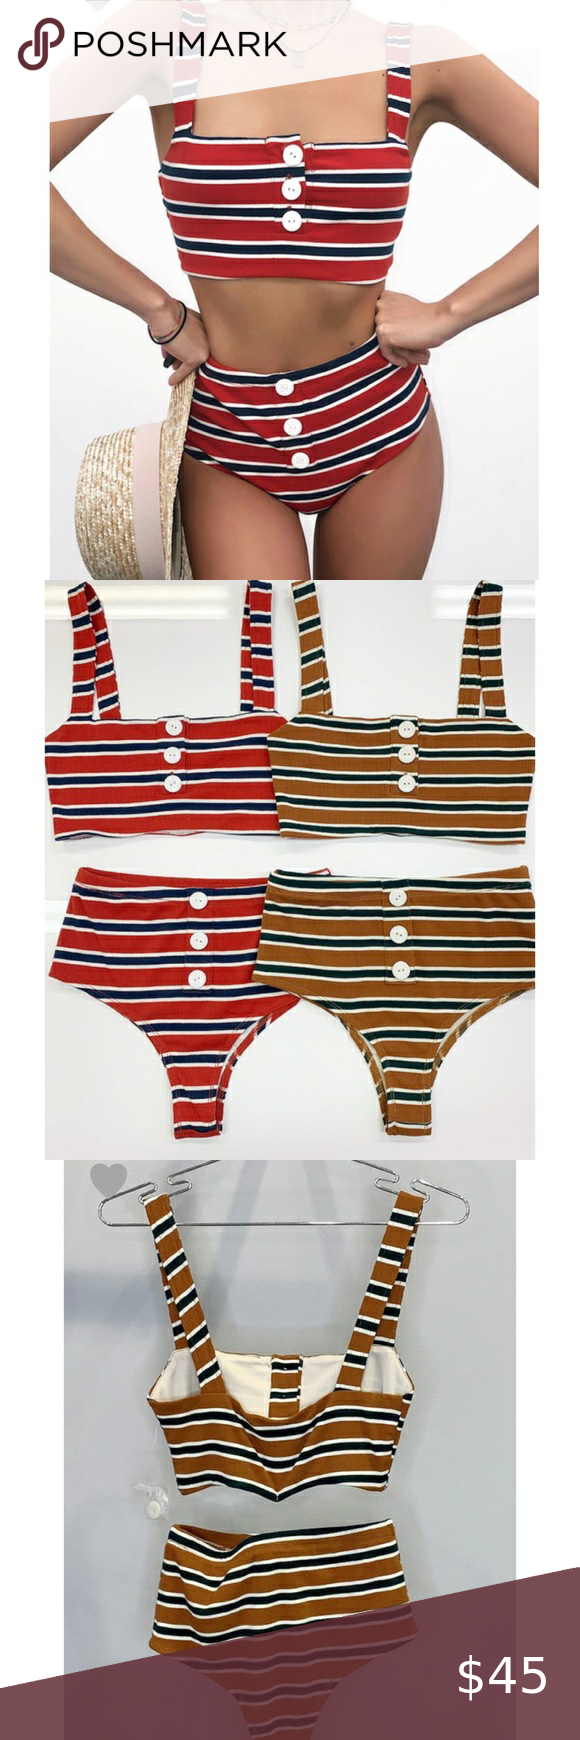 """🇺🇸 NEW ARRIVAL: Red white & blue 2 piece bikini Red, White and Blue 🇺🇸 patriotic high waist 2-piece biking with button detail! Length of top for all sizes is 5.5"""" and length of bottoms for all sizes is 11.5""""  Measurements  Small - bust 24"""" waist 25"""" Medium - bust 26"""" waist 26"""" Large - bust 28"""" waist 28""""  #swimsuit #bathingsuit #america #4thofjuly #bikini boutique Swim Bikinis"""